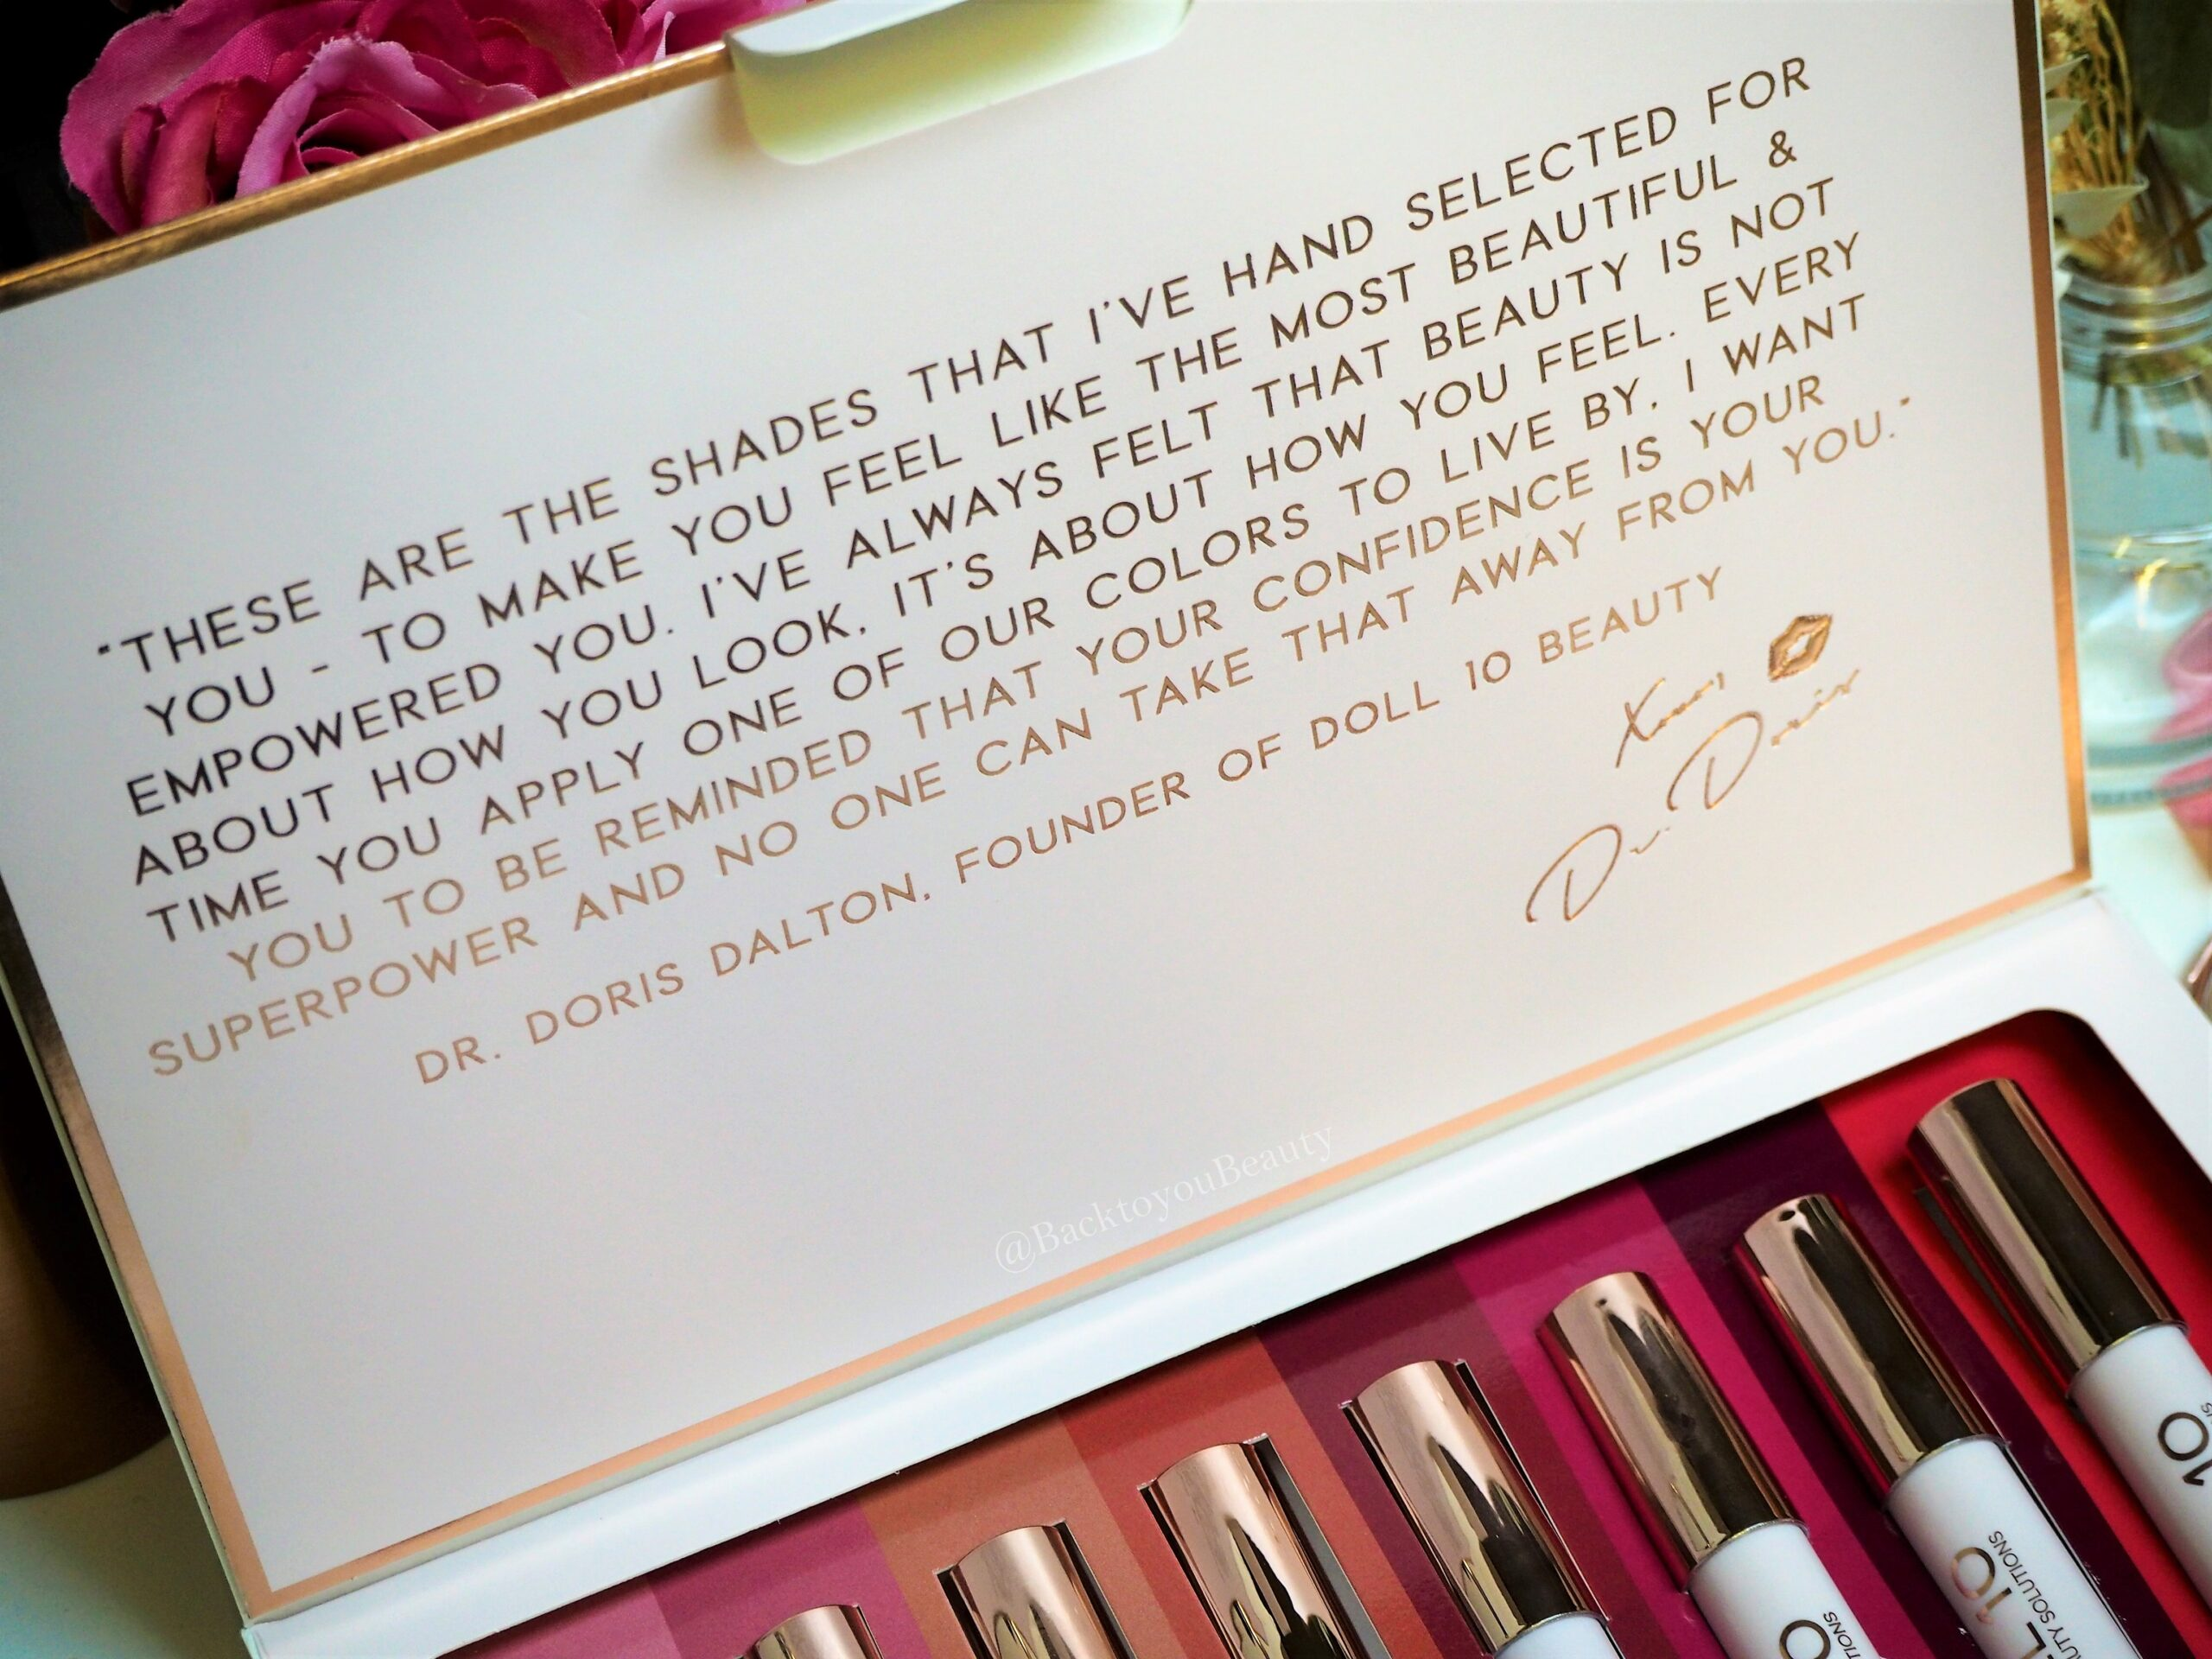 Doll 10 Colors to live by collection packaging